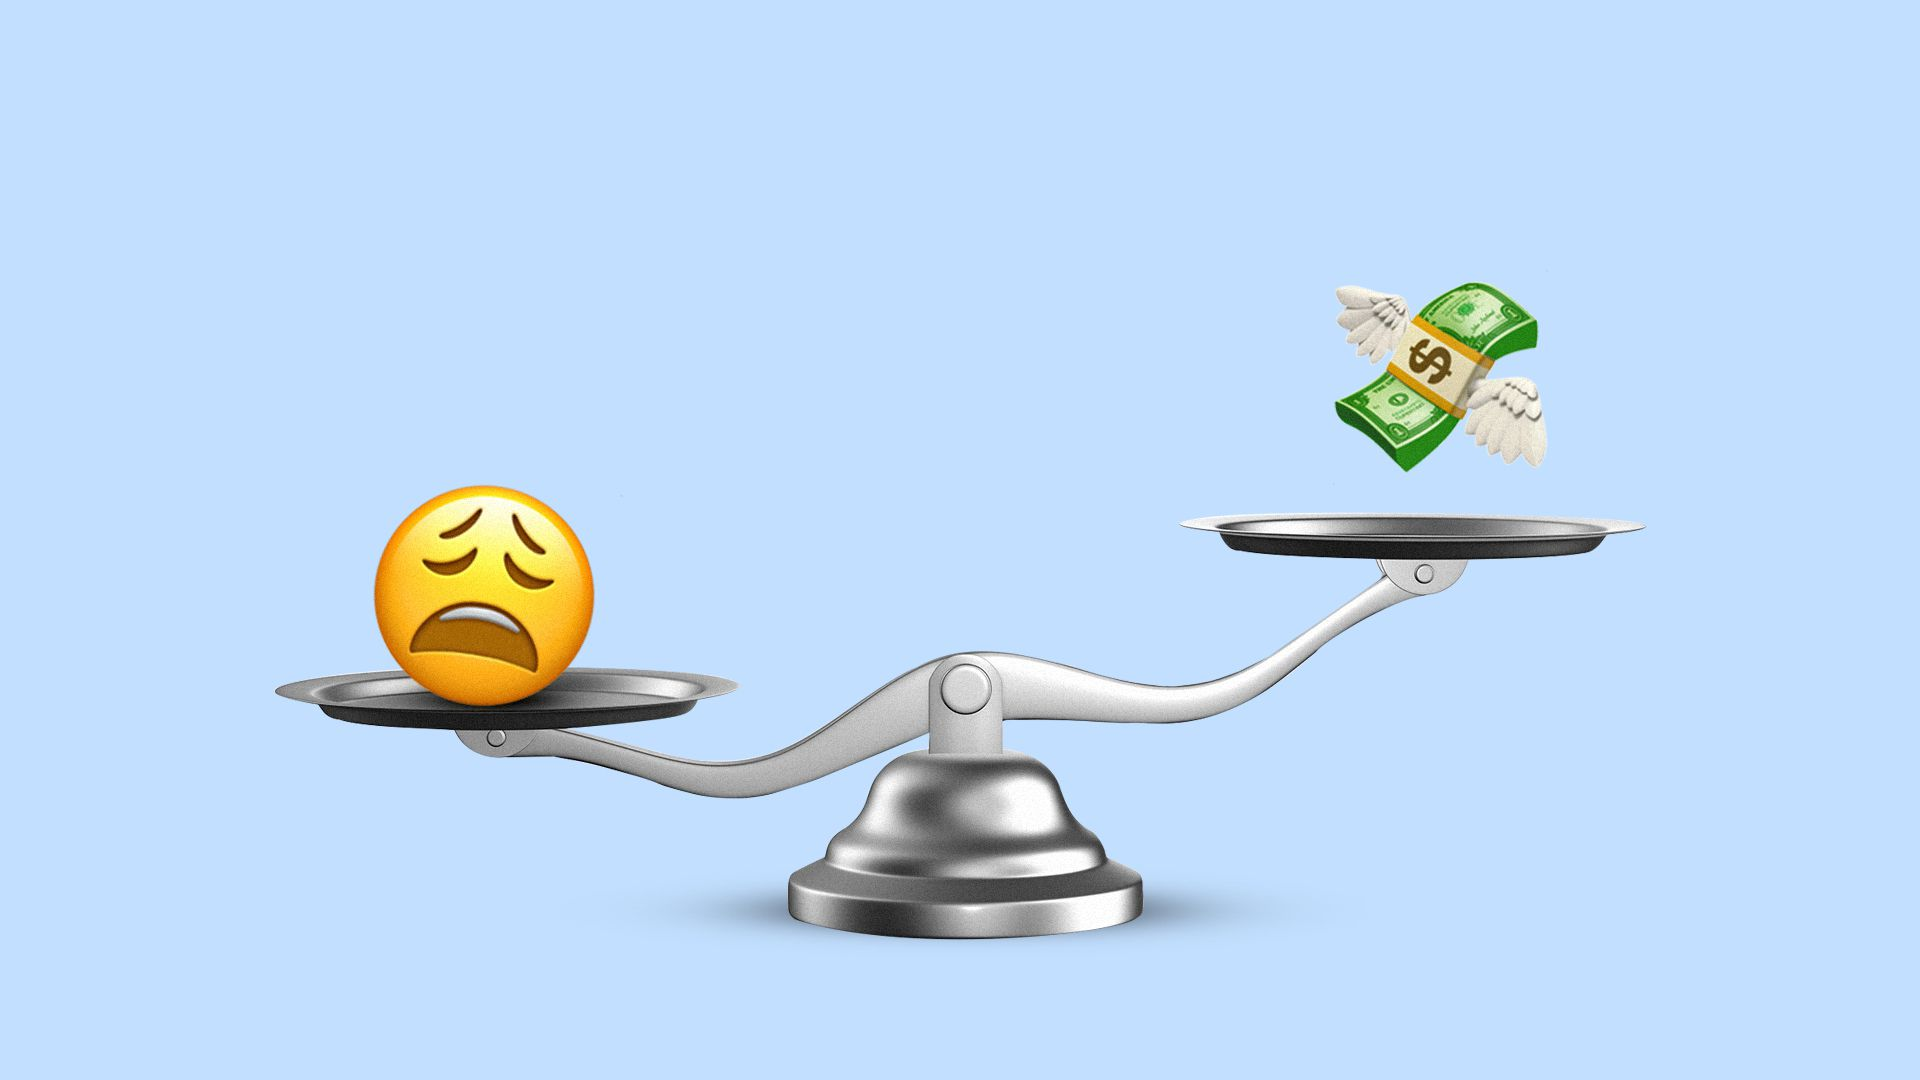 Illustration of a see saw with frustrated emoji on one side and a money emoji on the other